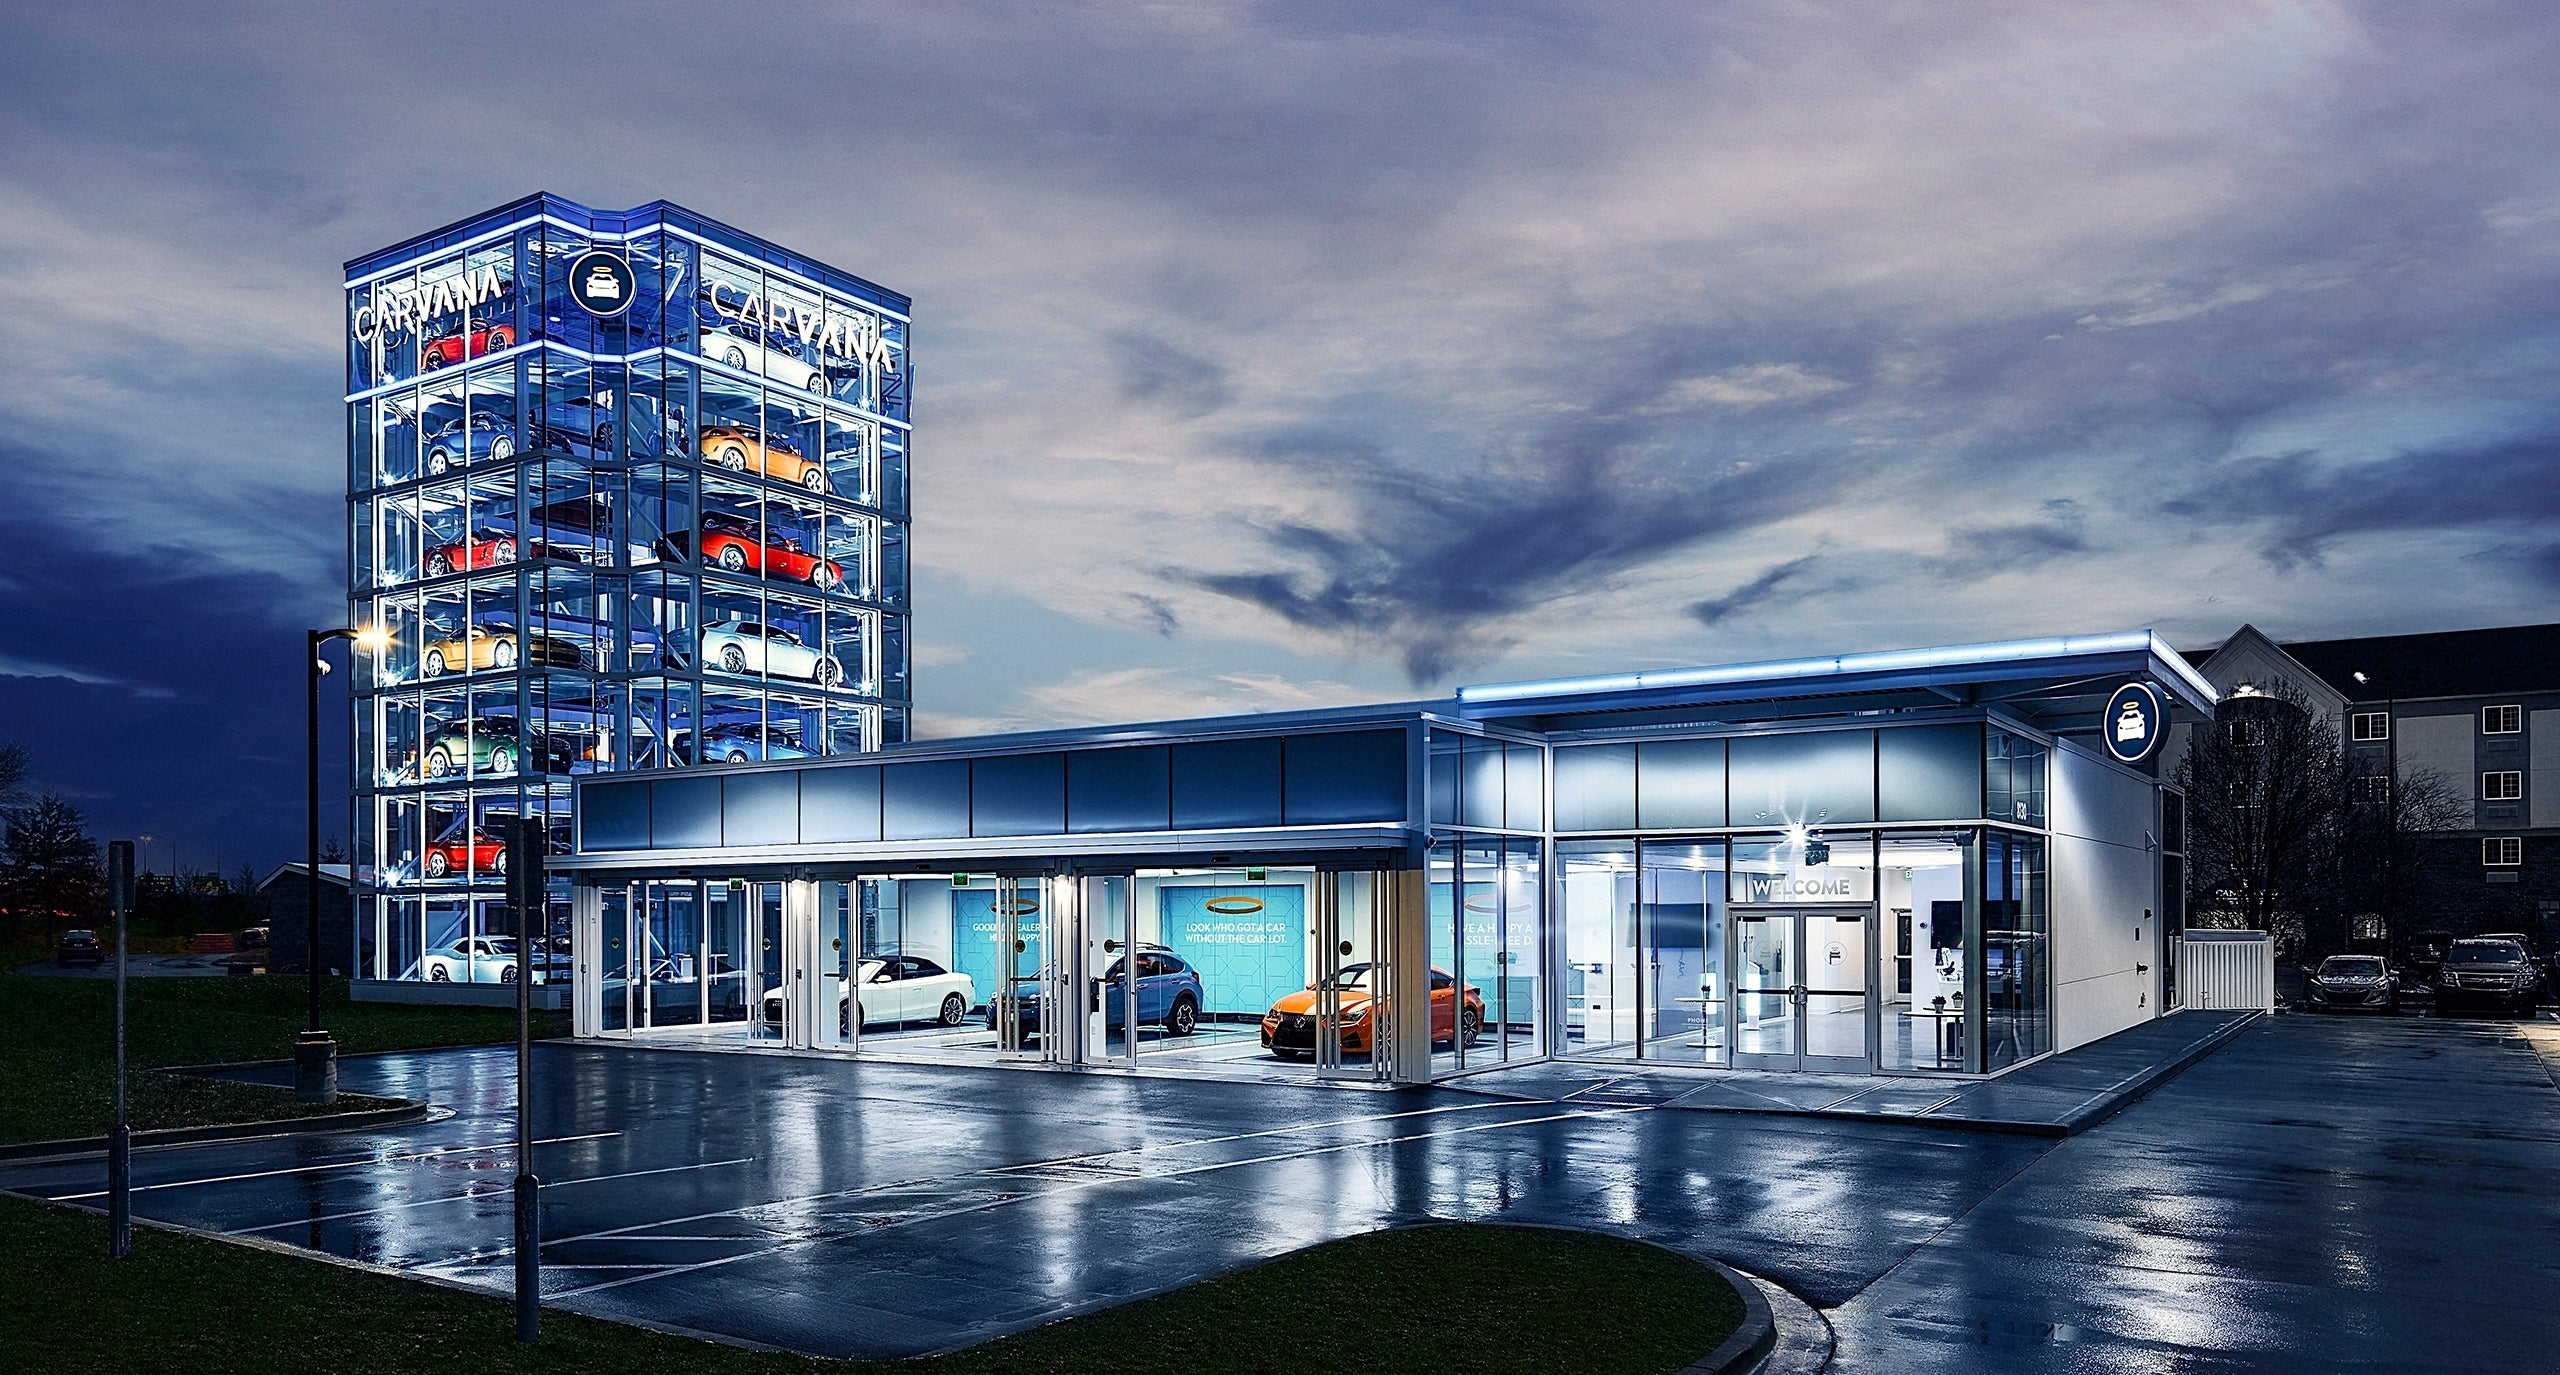 Why Carvana S Car Vending Machine Is More Than Just A Gimmick The